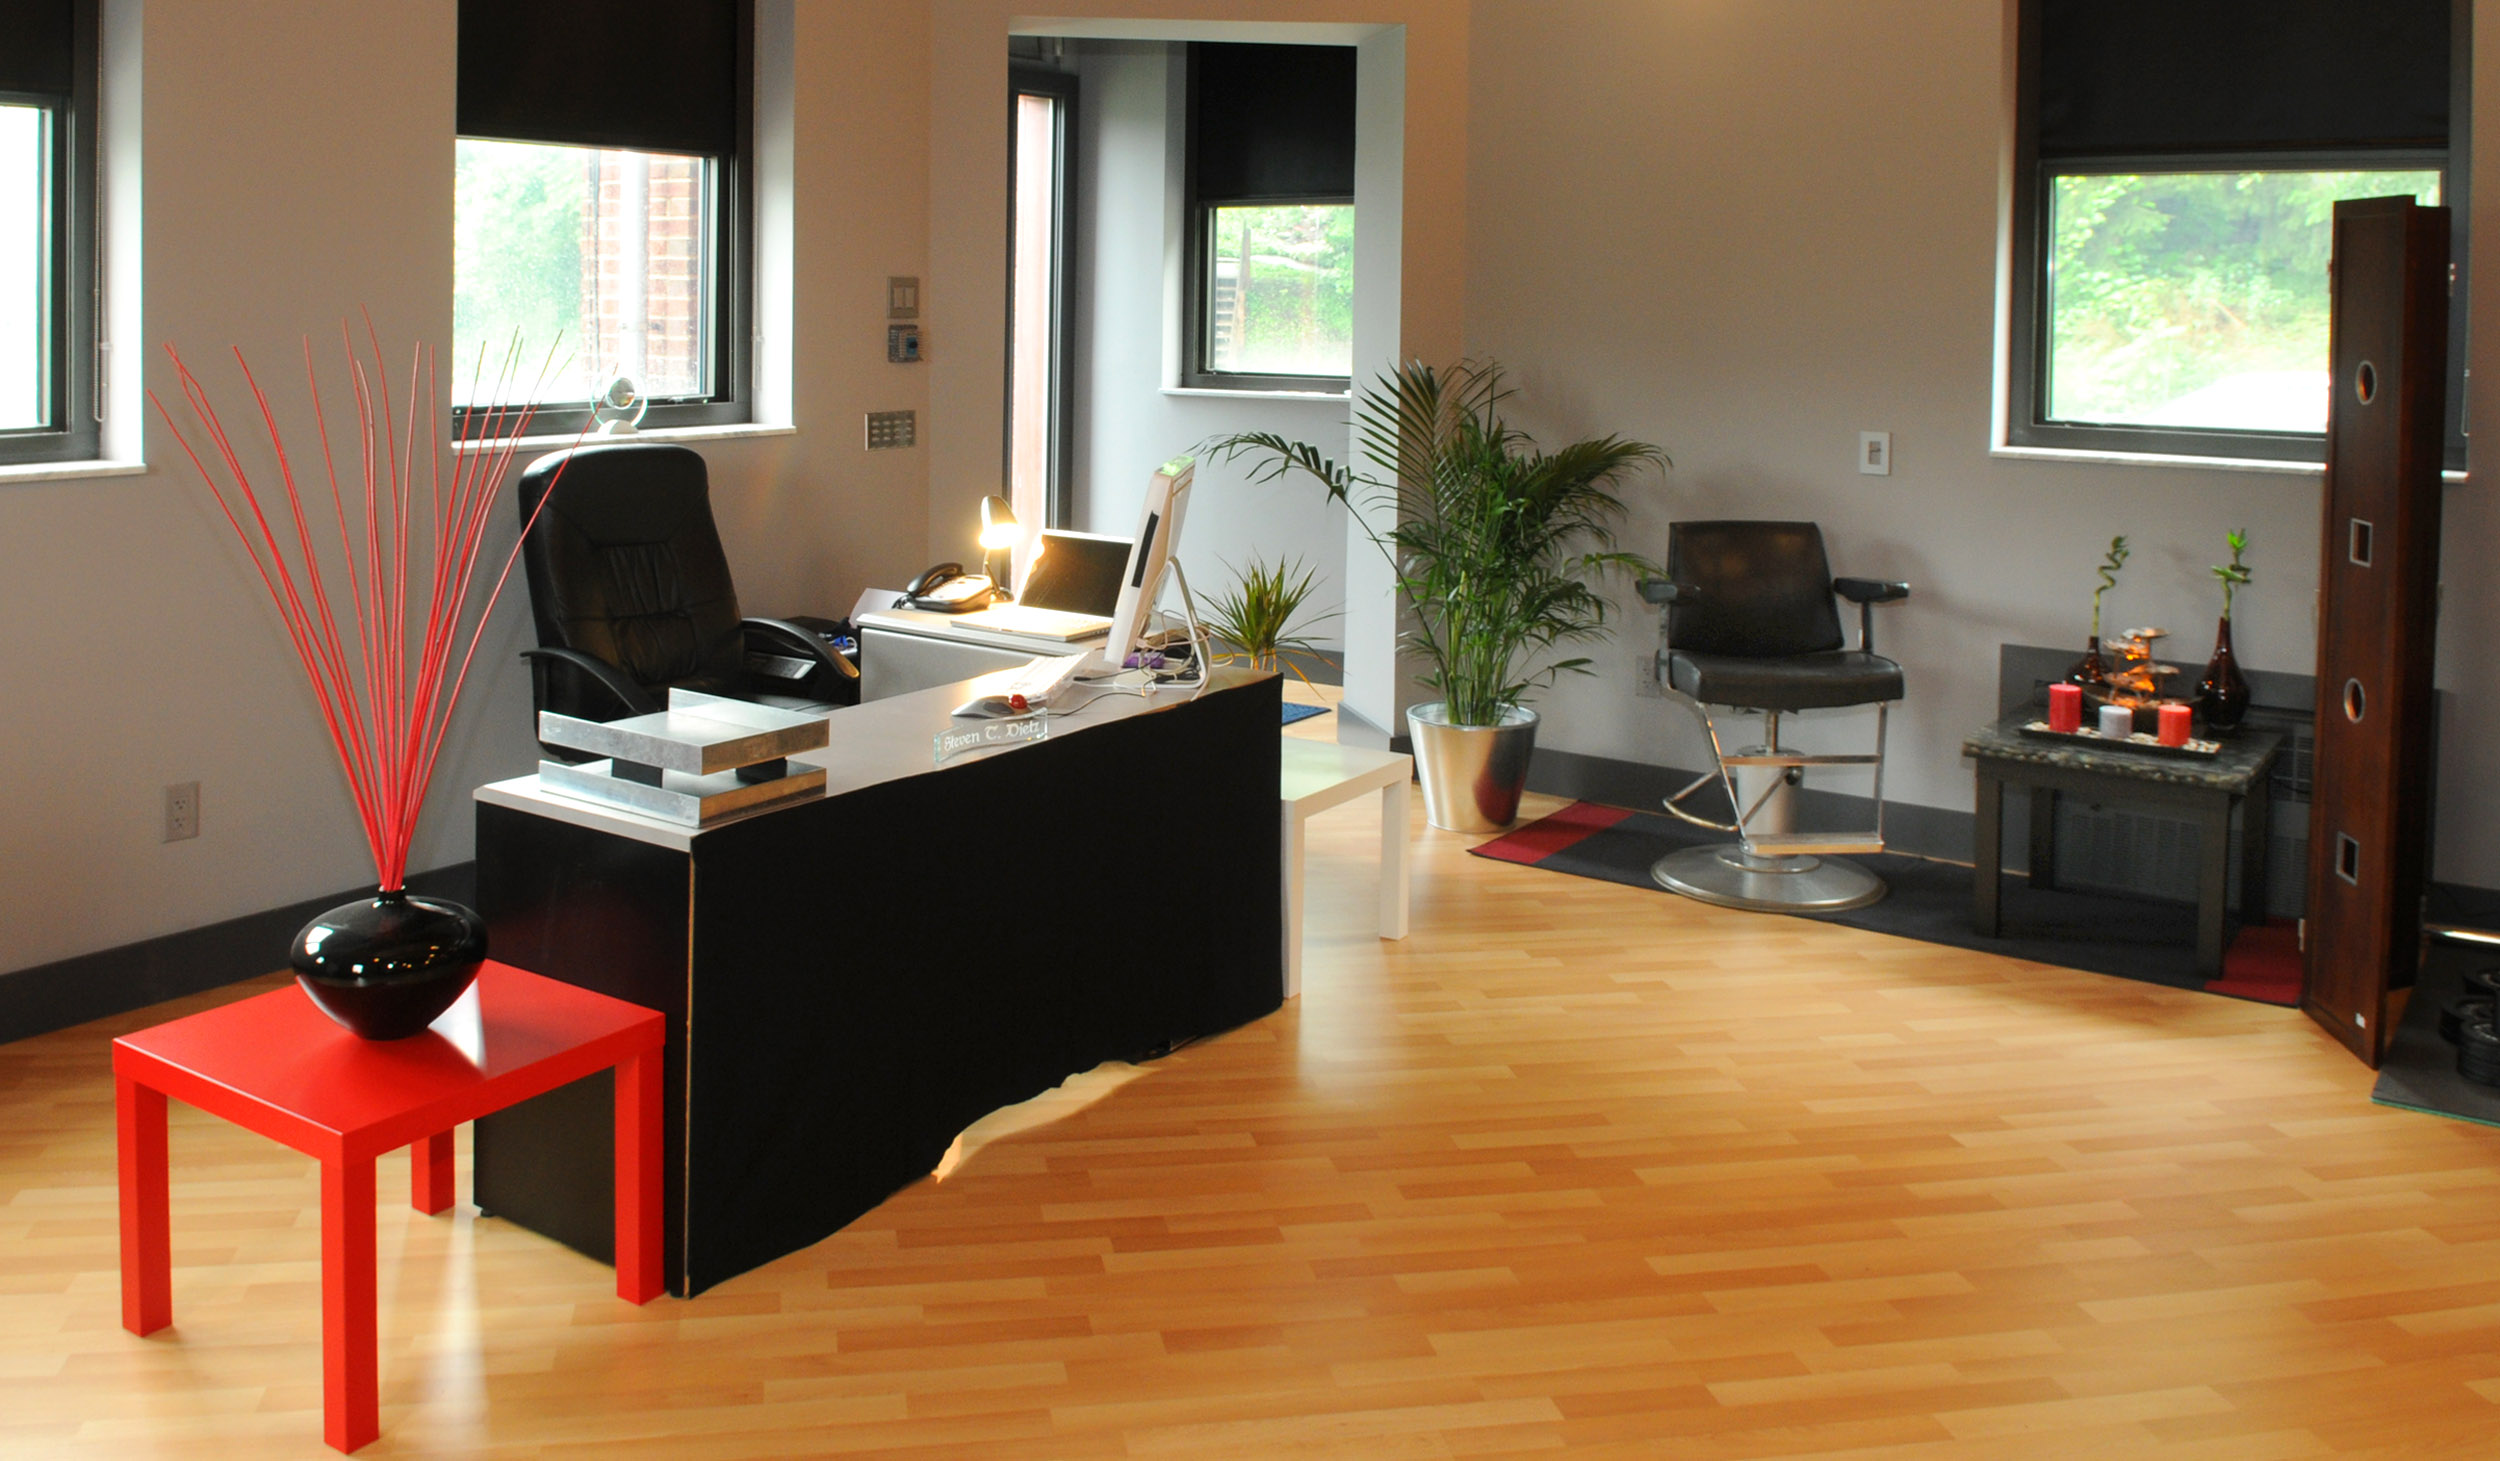 Home office feng shui - Feng Shui Office Space Inner Harmony Feng Shui Commerical And Business Consuitaton Services